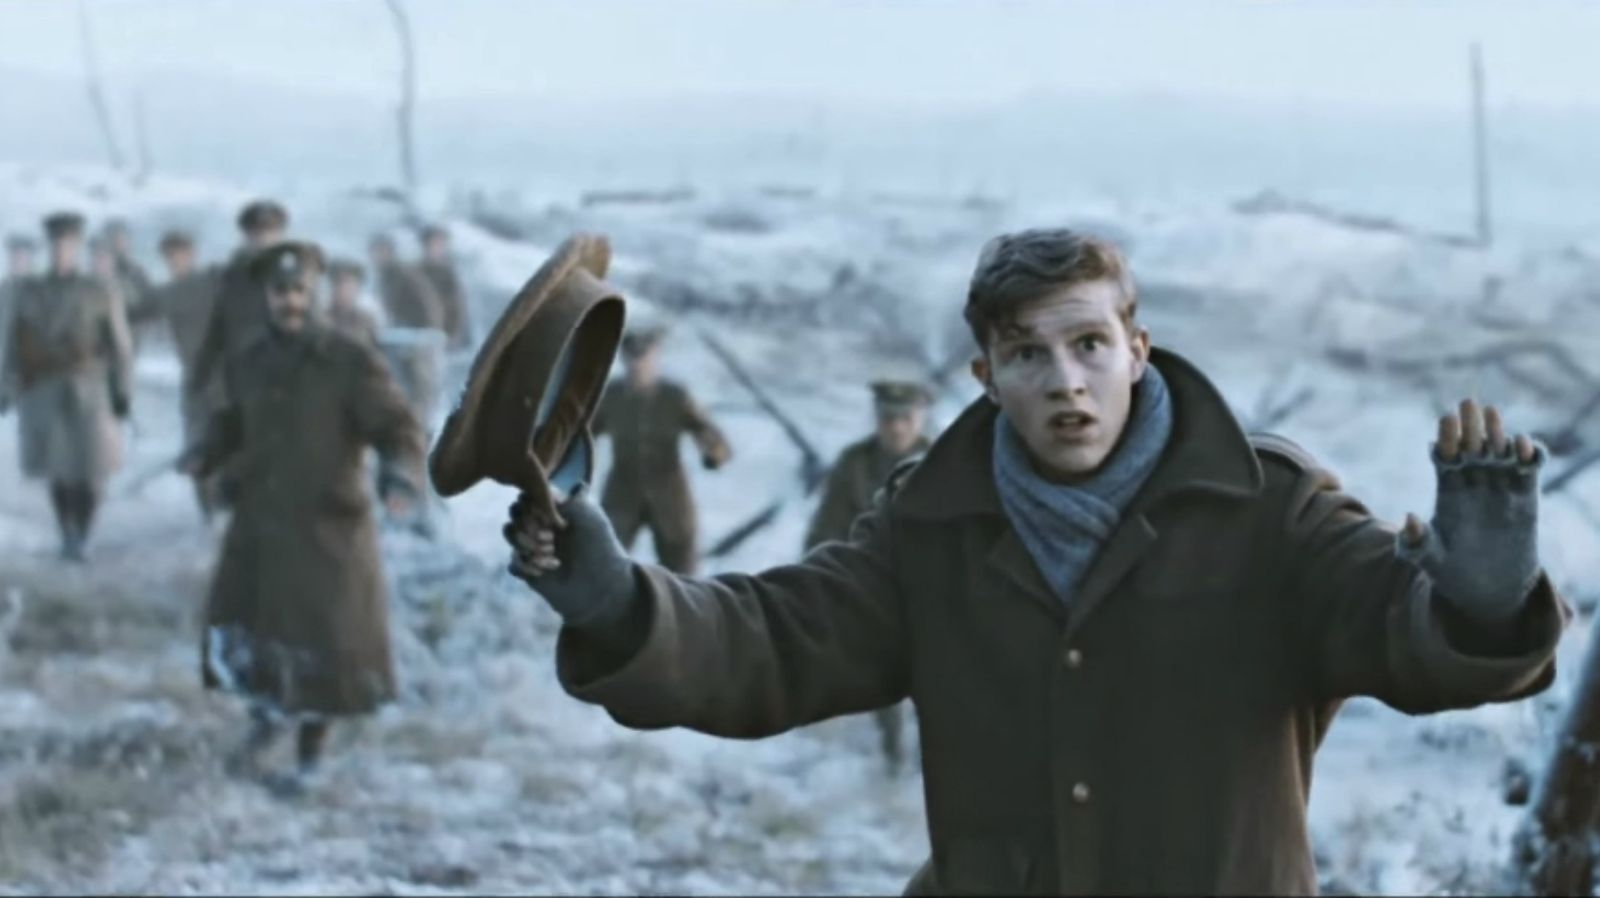 Sainsbury's Christmas Advert Recreates the Christmas Truce of 1914.